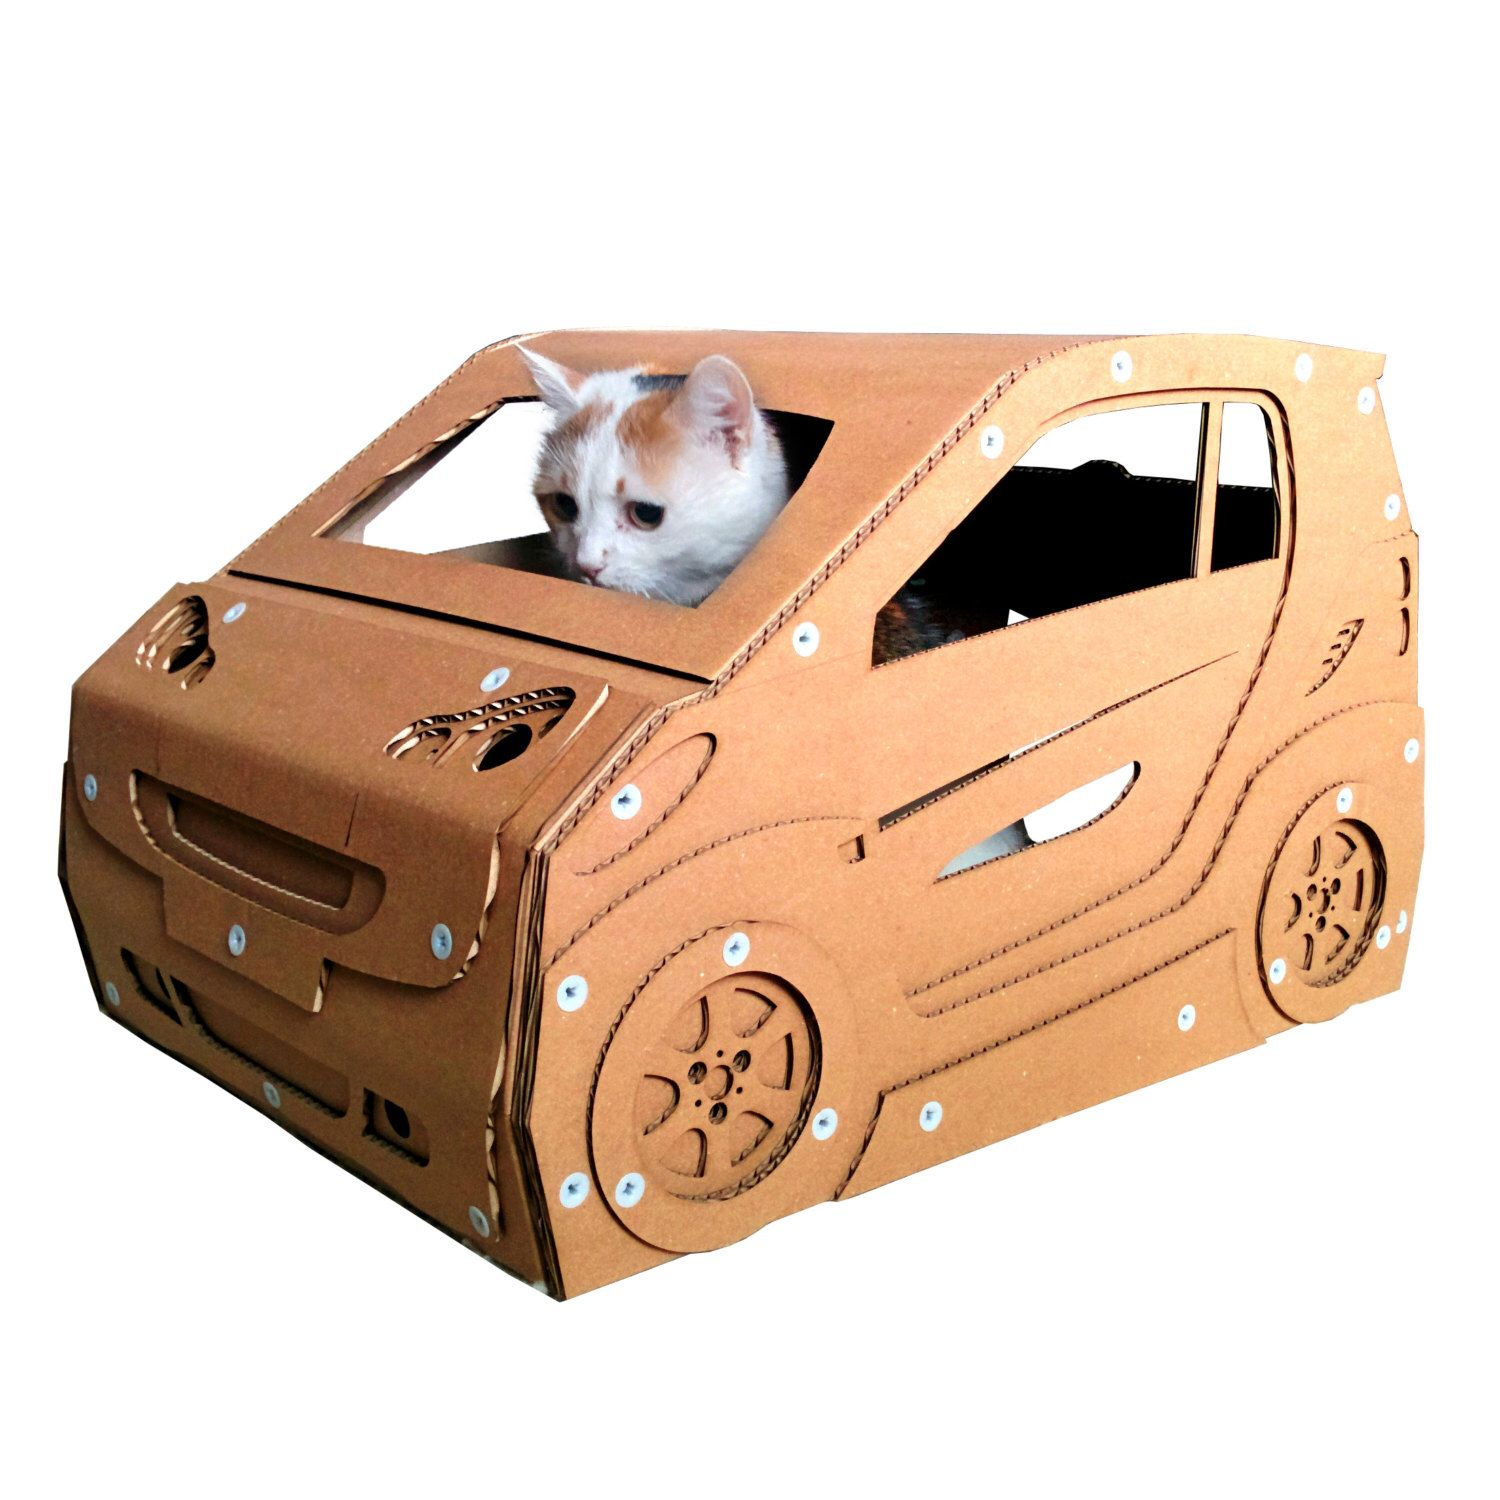 Smart Cardboard Cat House,Cat Furniture, Cat Toy, Cat Bed, Cat Cave, Pet House, Cardboard Furniture,Cat Condo by CacaoFurniture on Etsy https://www.etsy.com/listing/255204216/smart-cardboard-cat-housecat-furniture